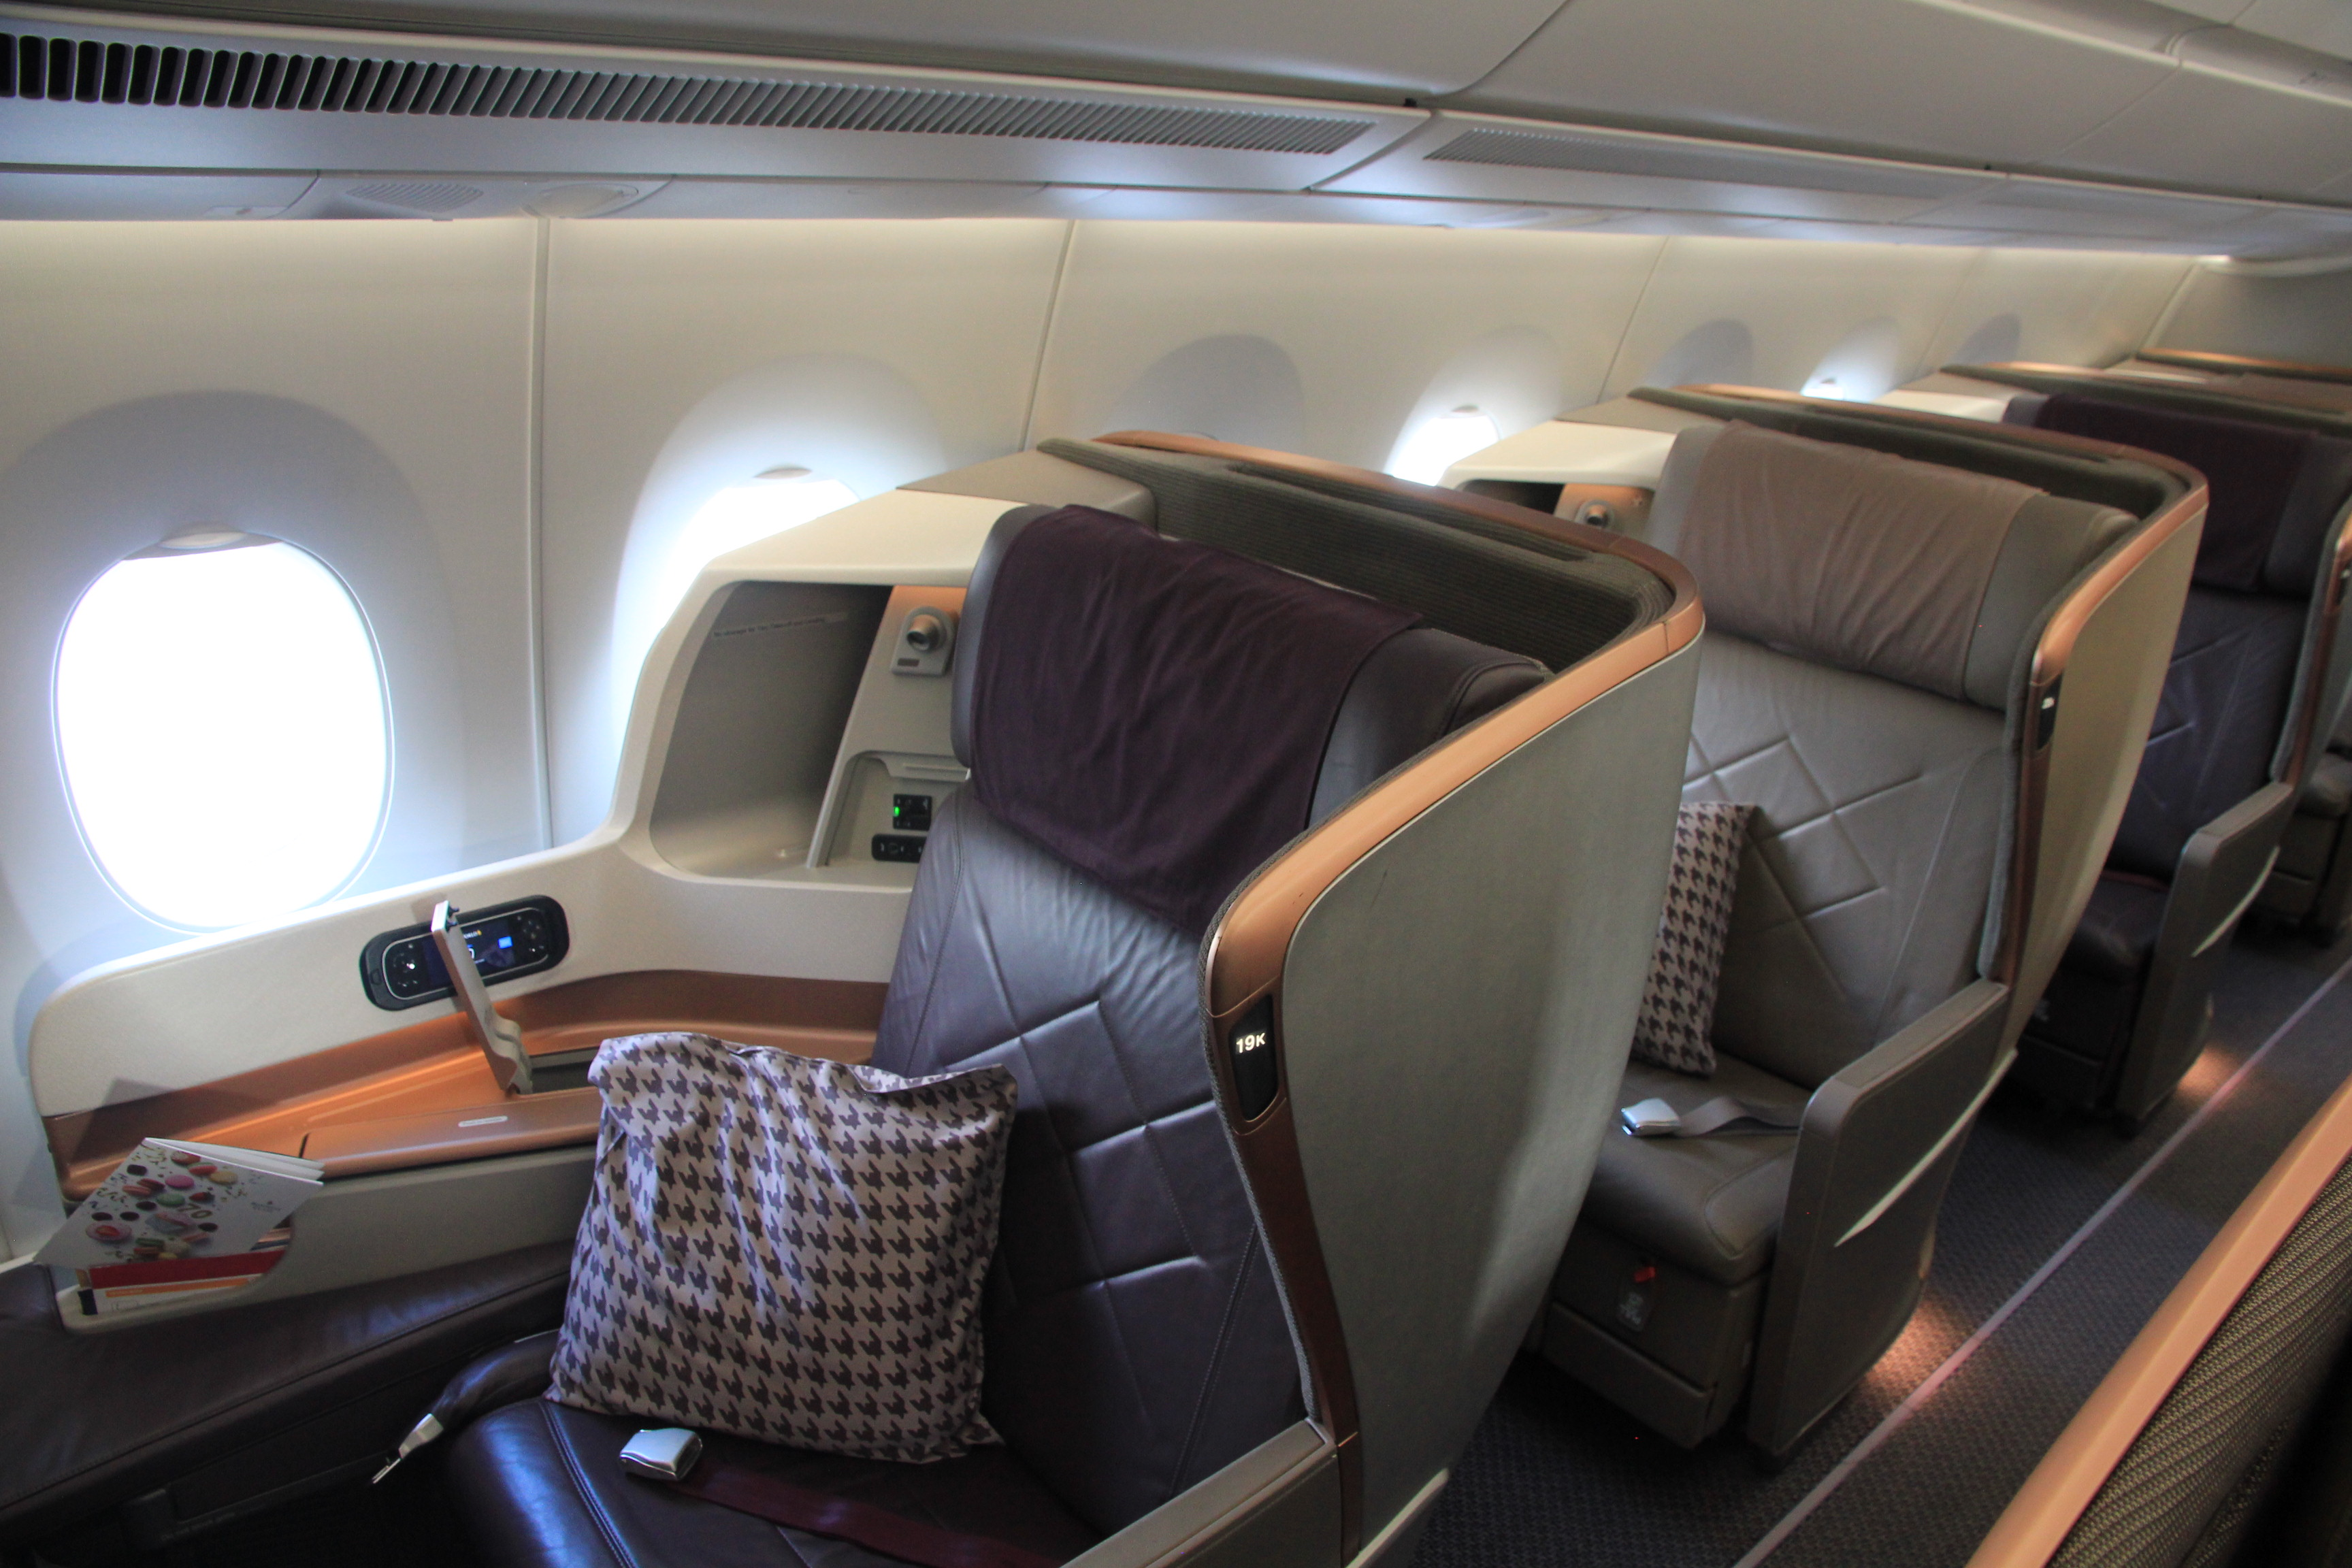 singapore airlines stellt die neue business class in der boeing 787 10 vor. Black Bedroom Furniture Sets. Home Design Ideas